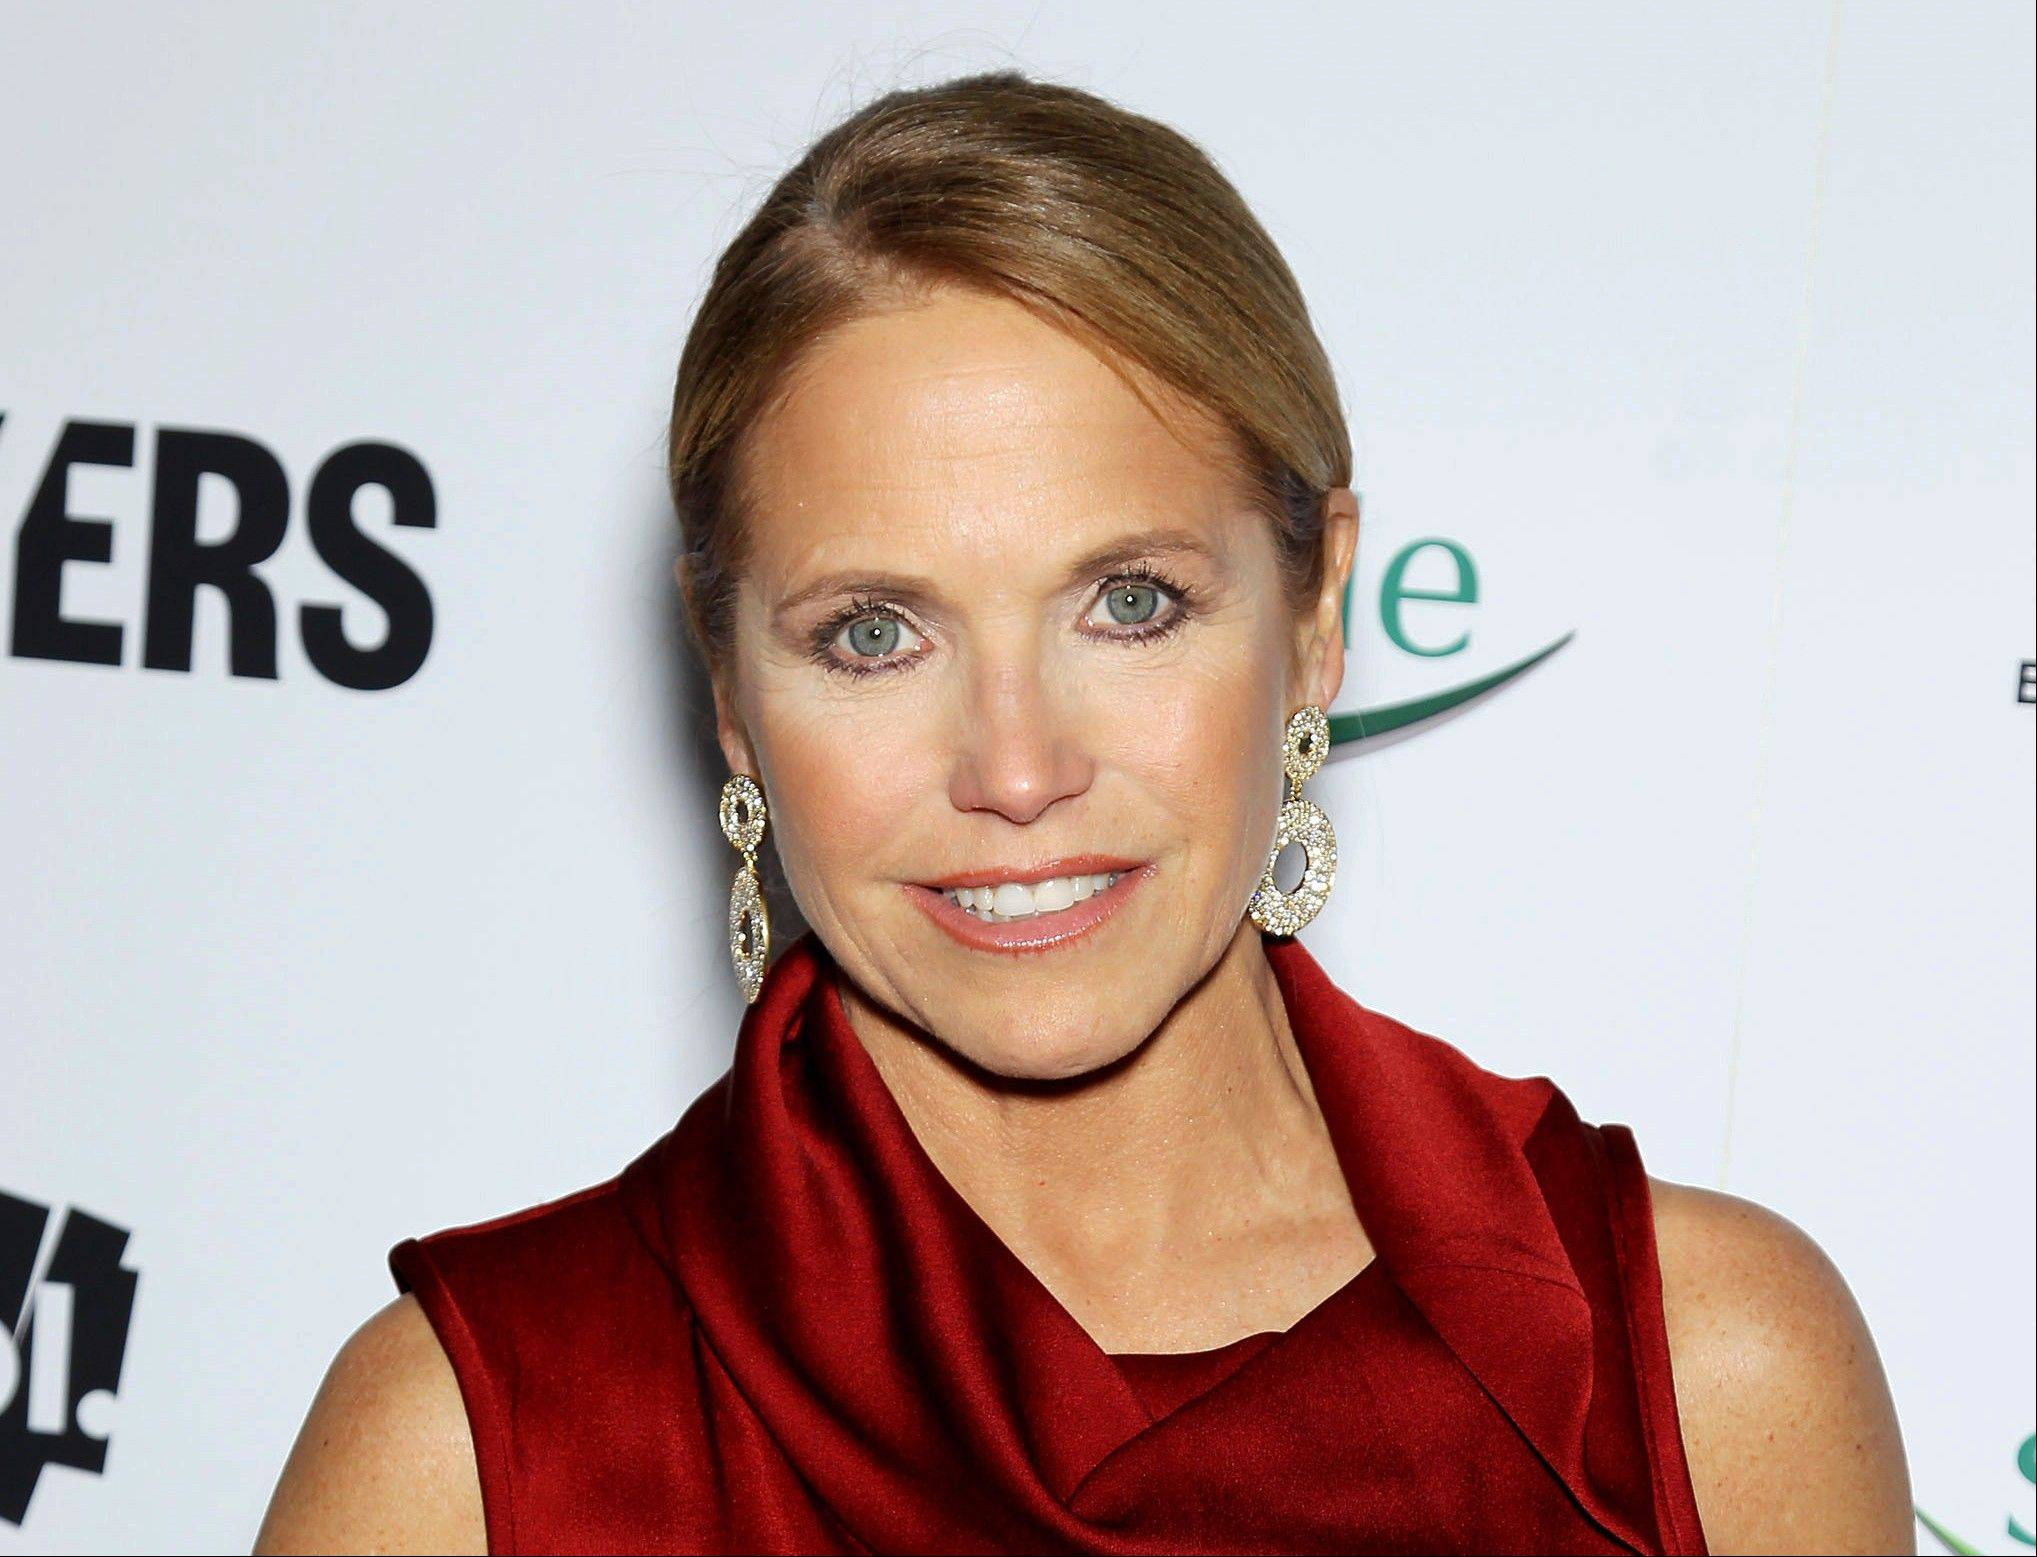 TV personality Katie Couric is getting married to her financier boyfriend John Molner.